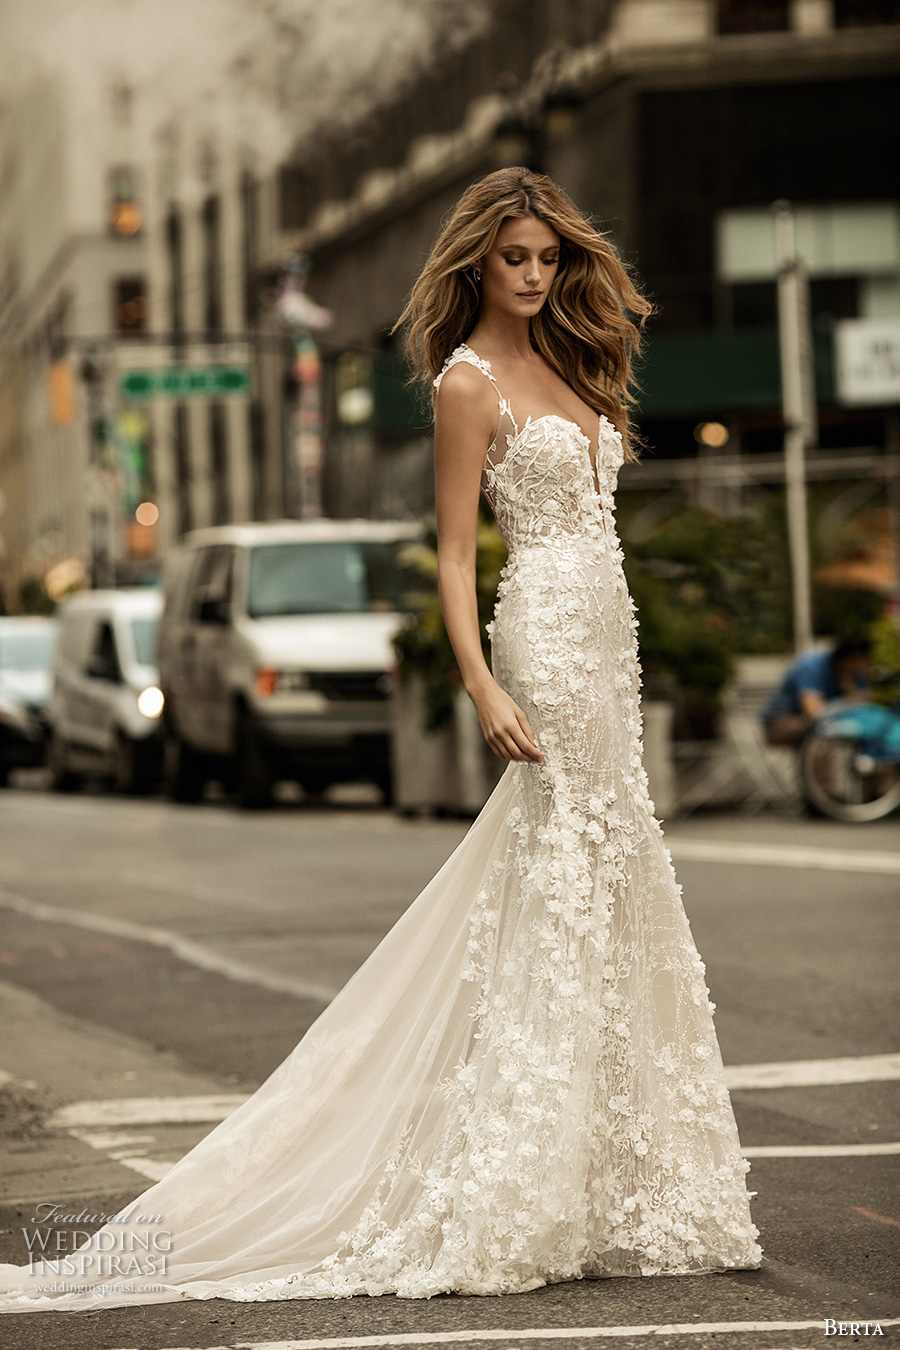 Berta fall 2017 wedding dresses wedding inspirasi berta fall 2017 wedding dresses junglespirit Images